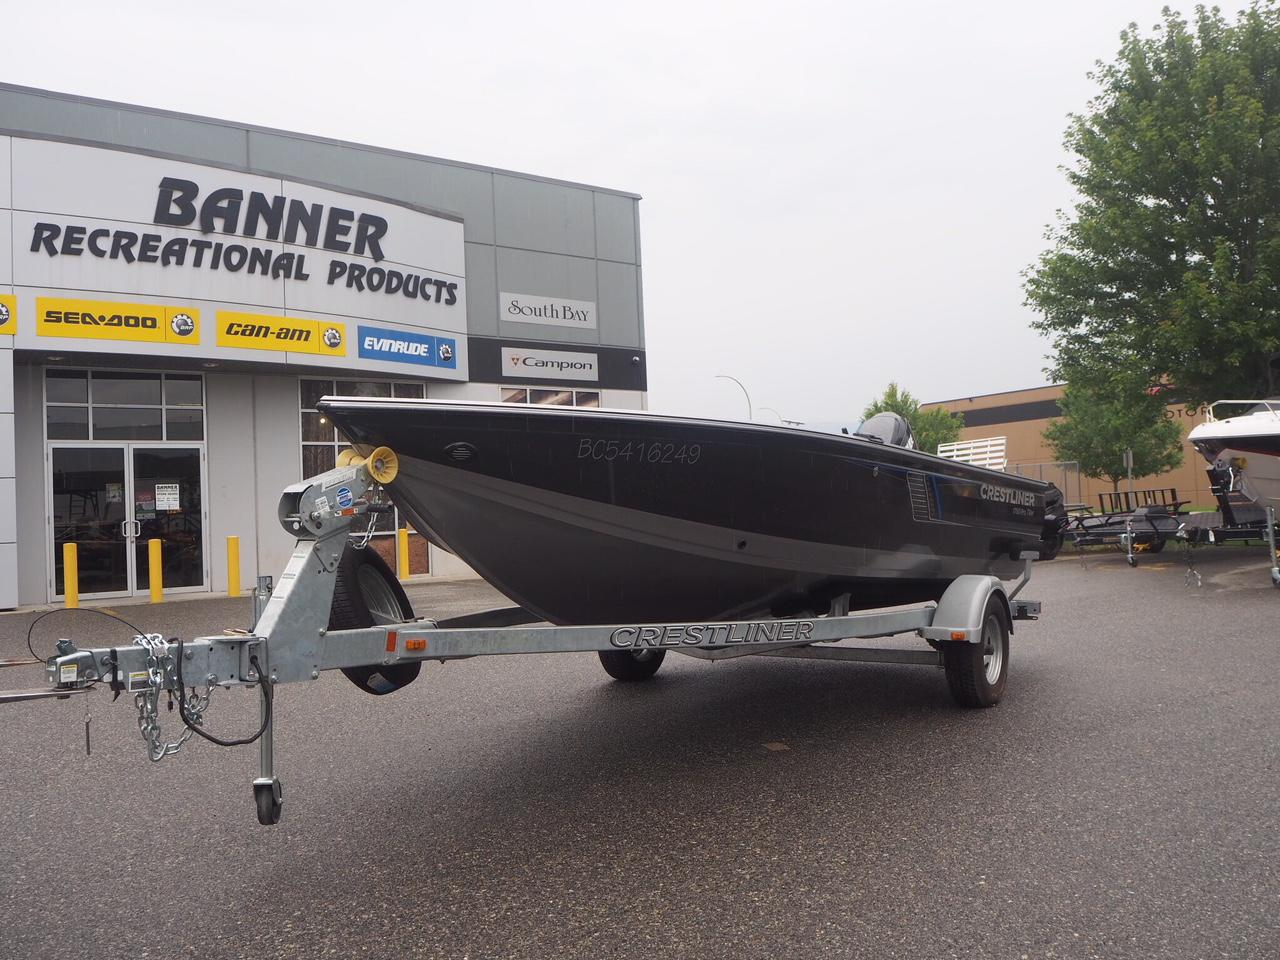 For Sale: 2016 Crestliner 1750 Pro-tiller ft<br/>Banner Recreational Products